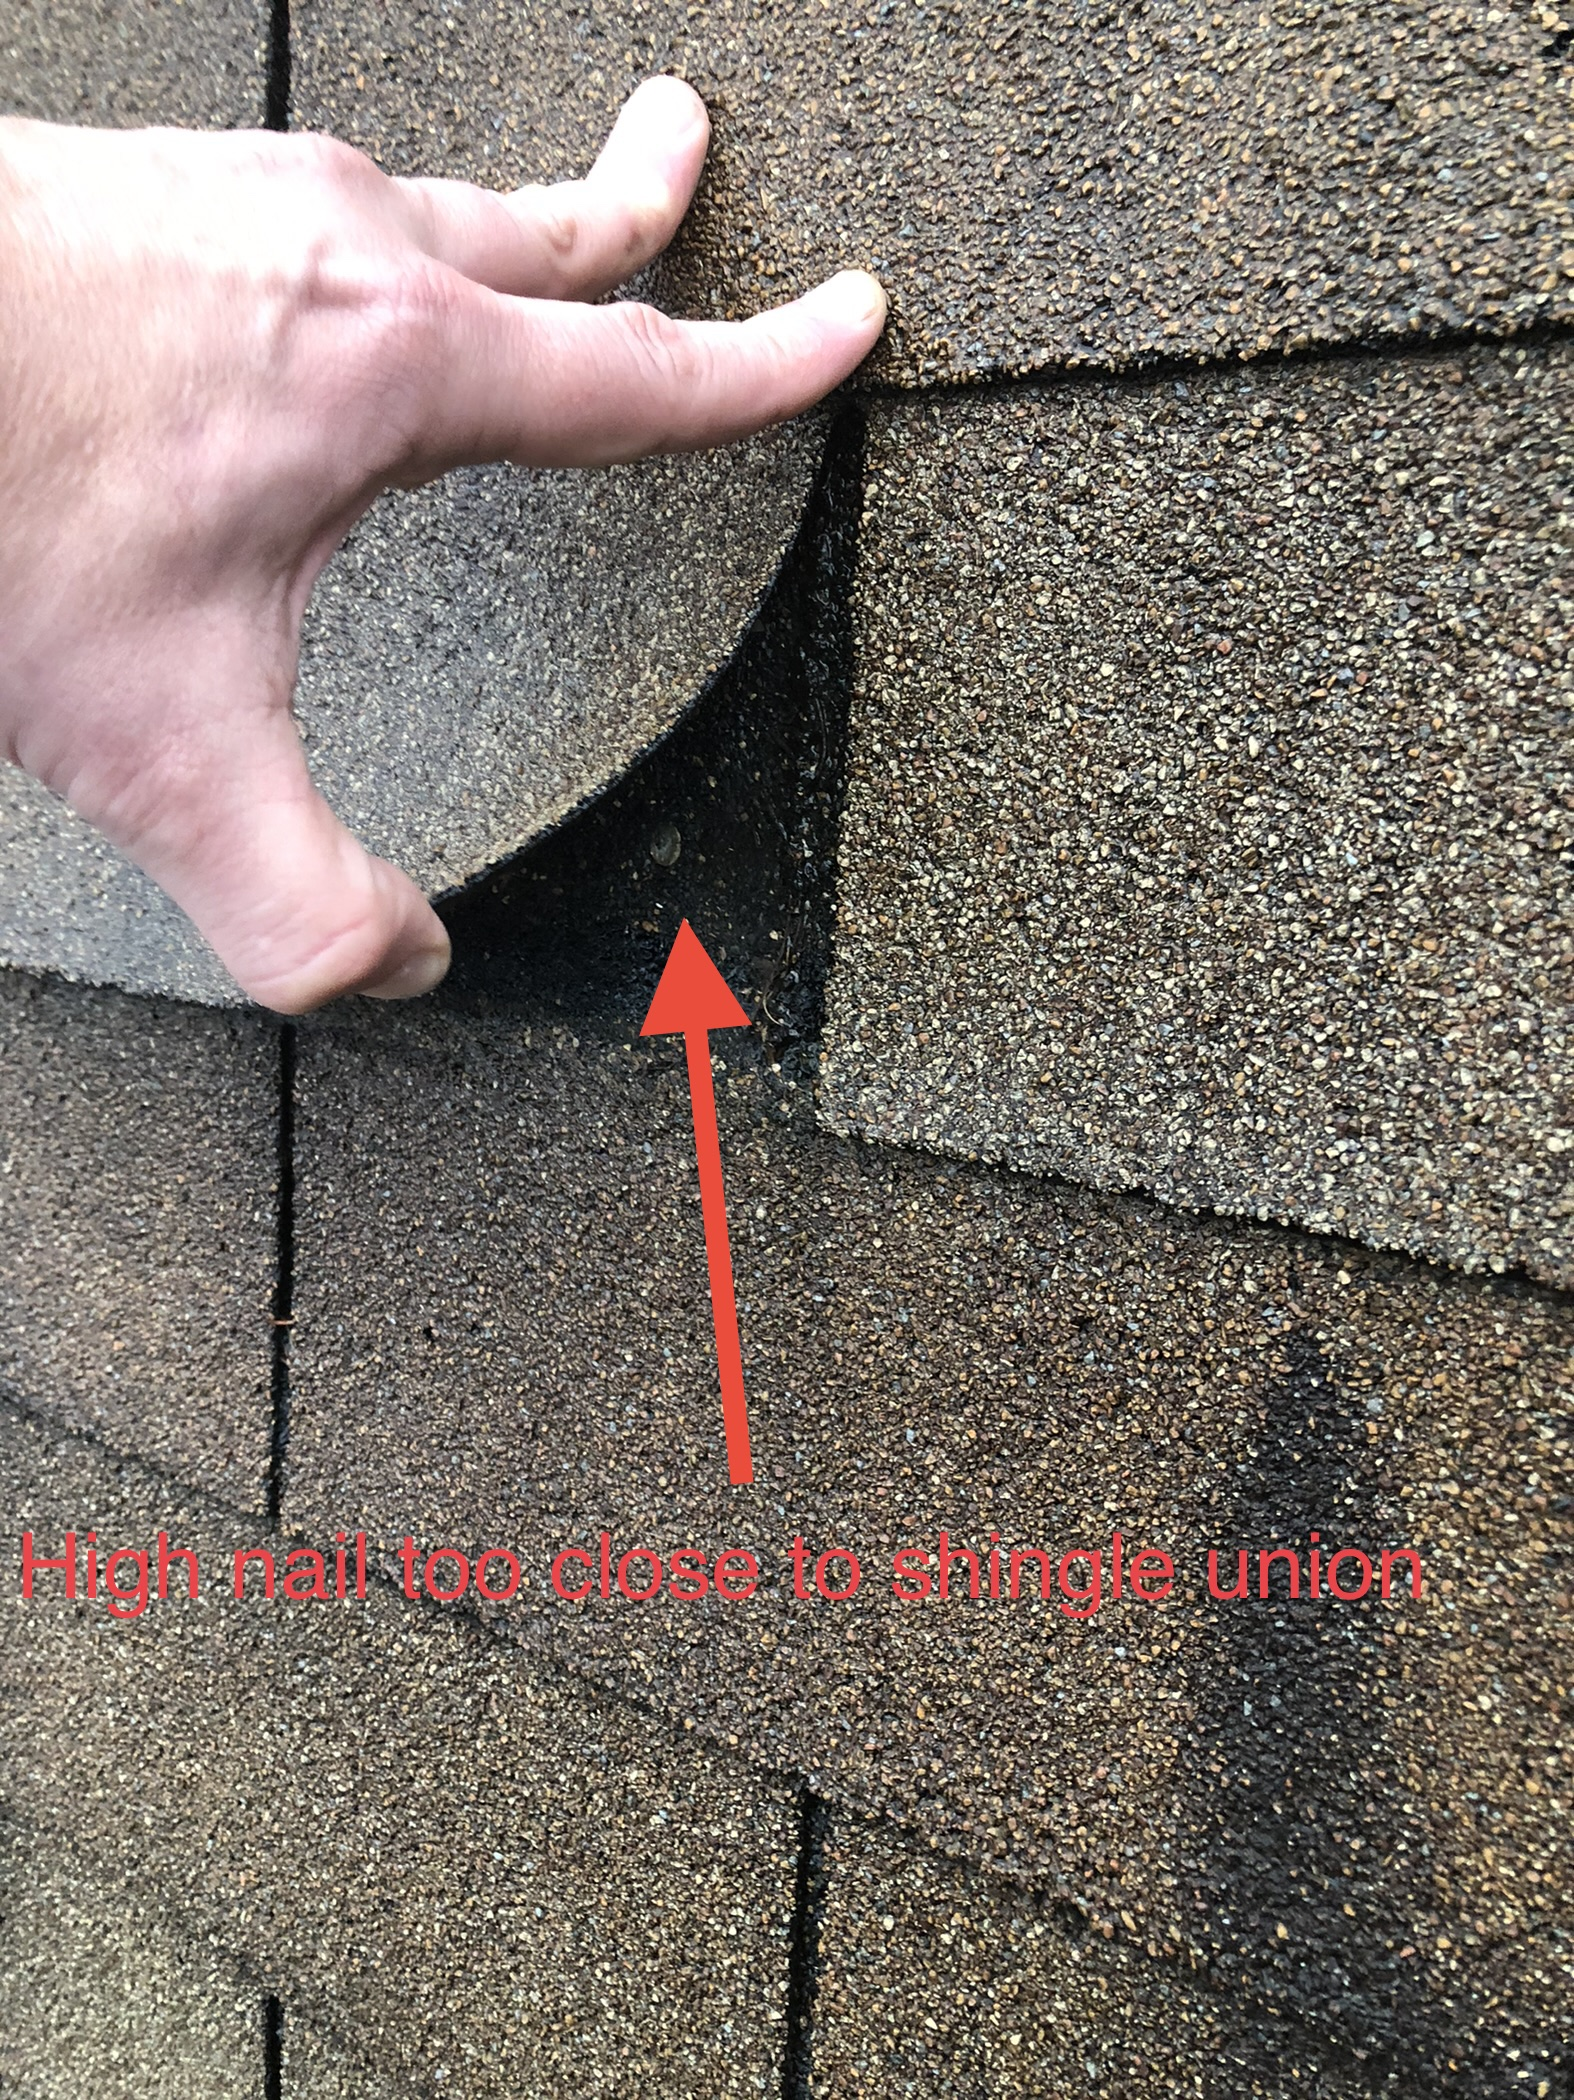 This is a picture of a shingle roof that has been miss nailed in Knoxville Tennessee